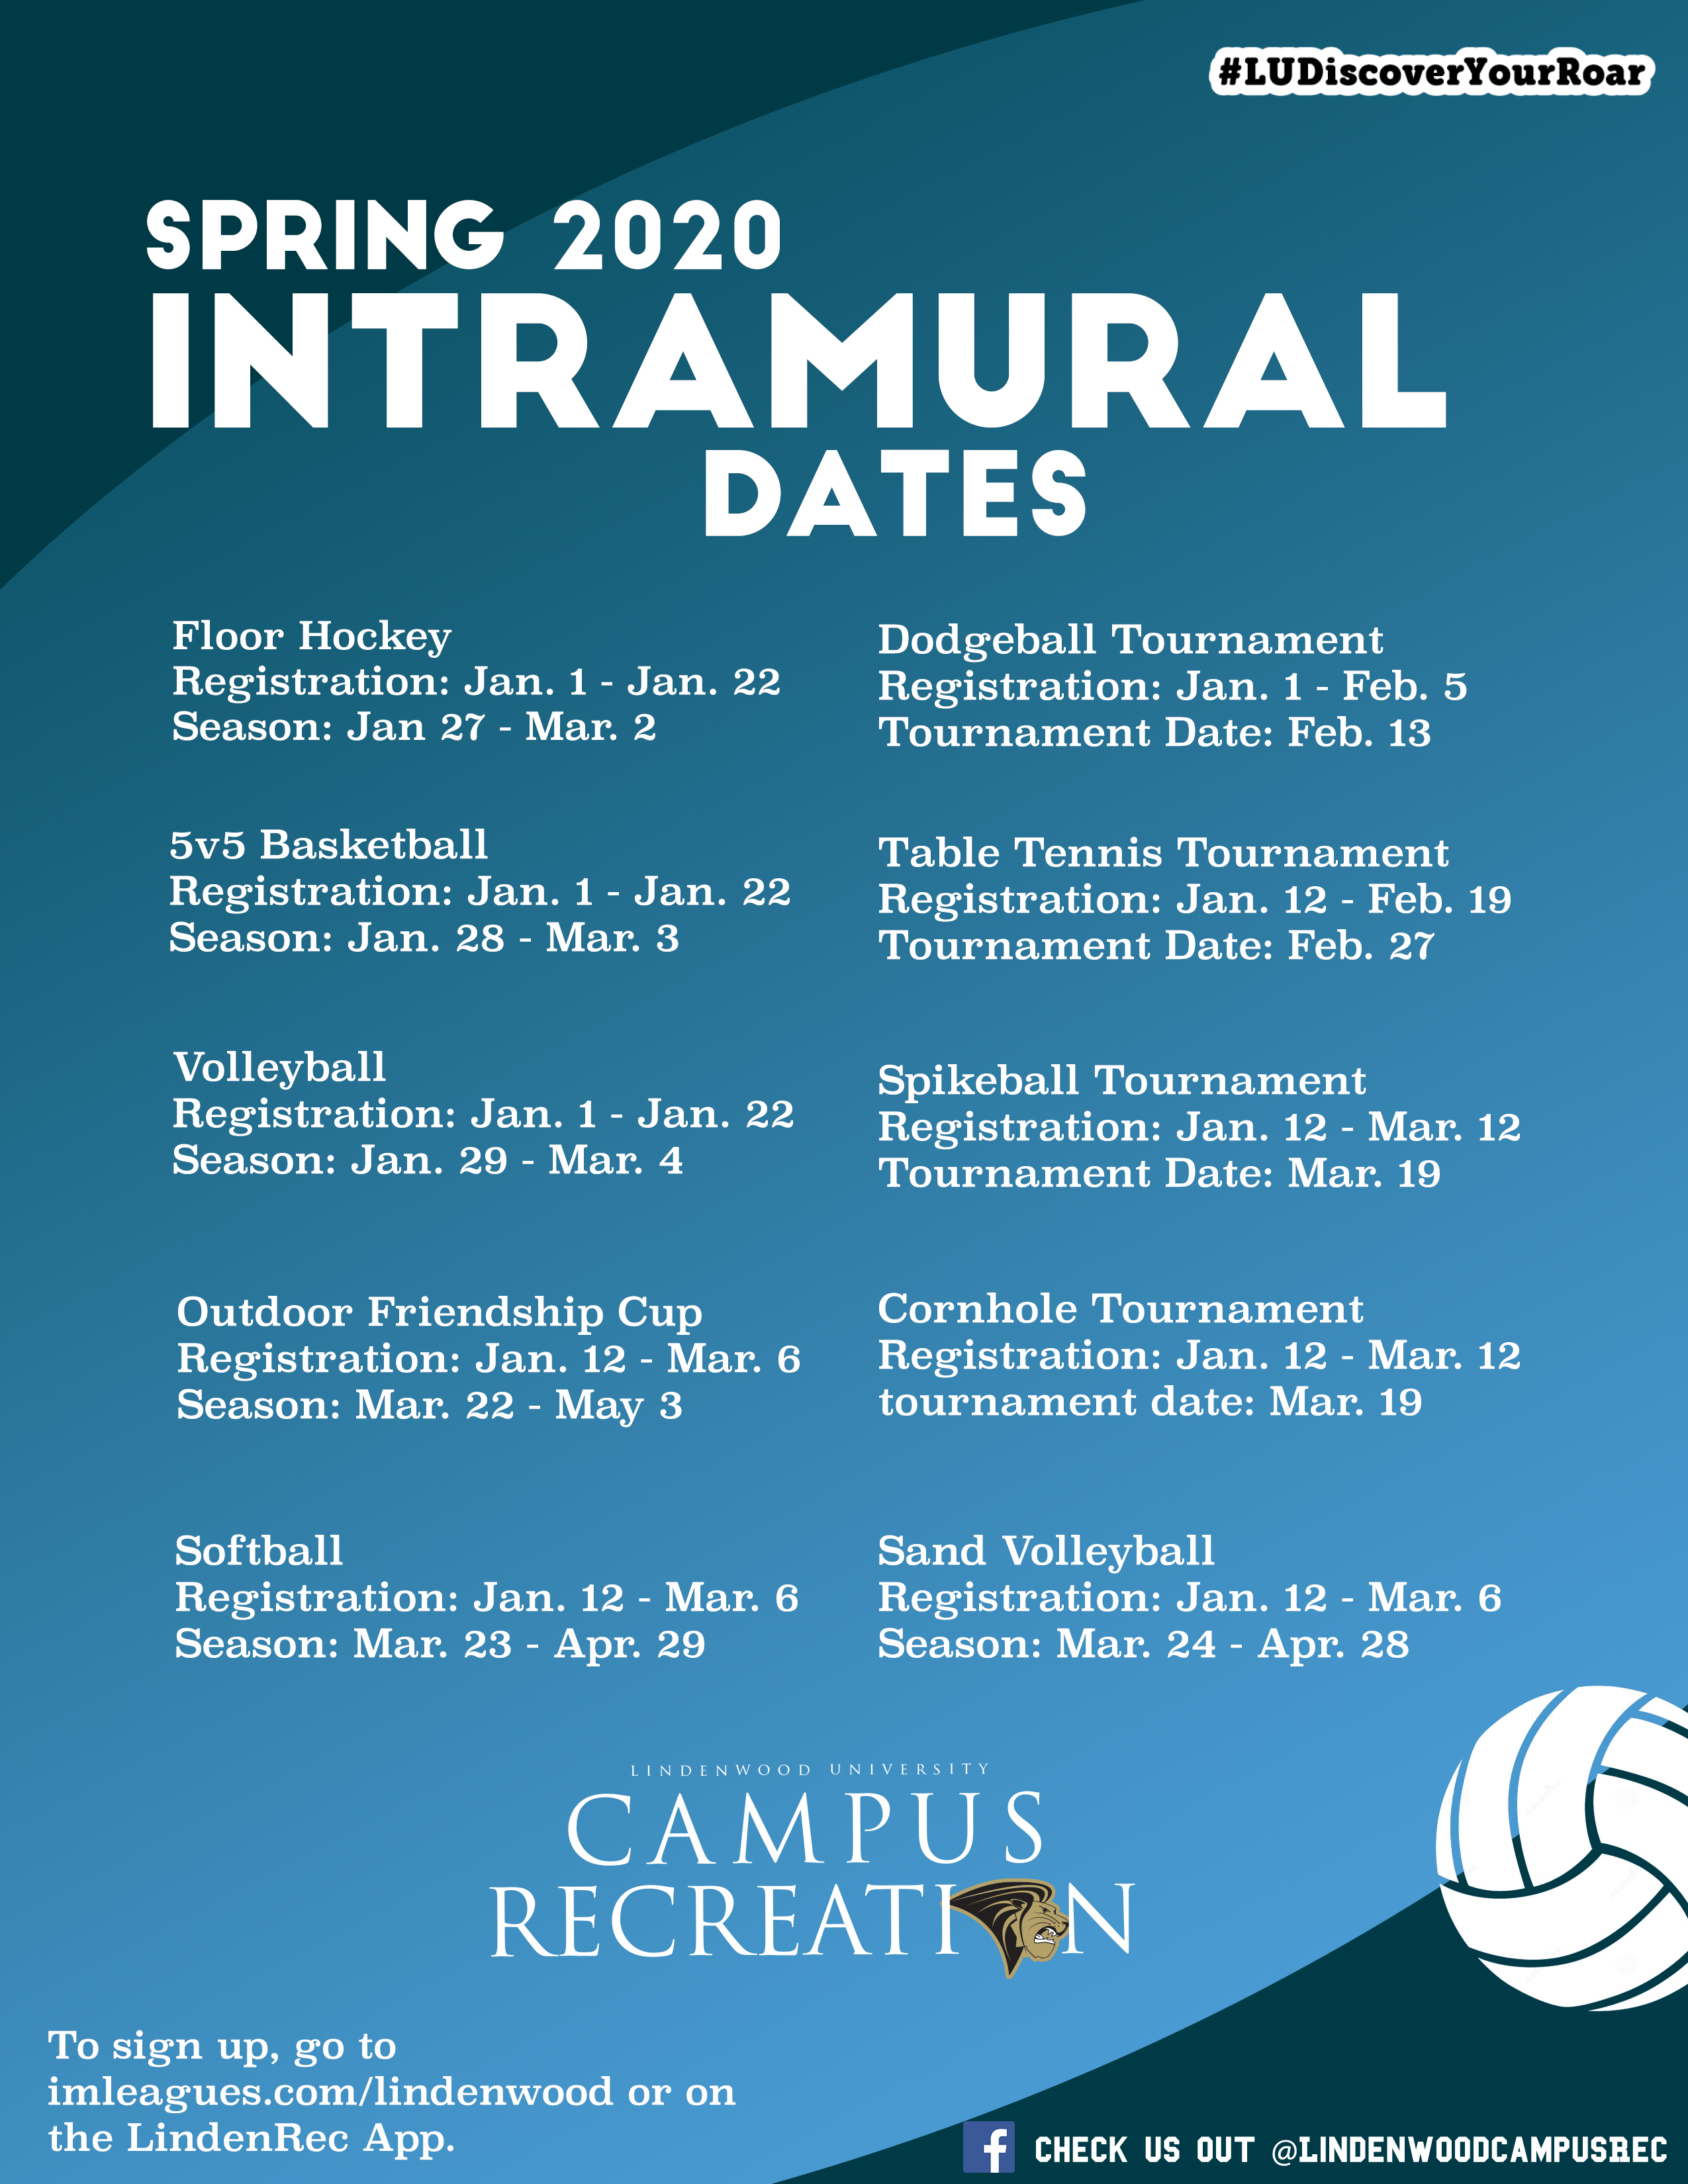 Spring 2020 Intramural Dates Graphic